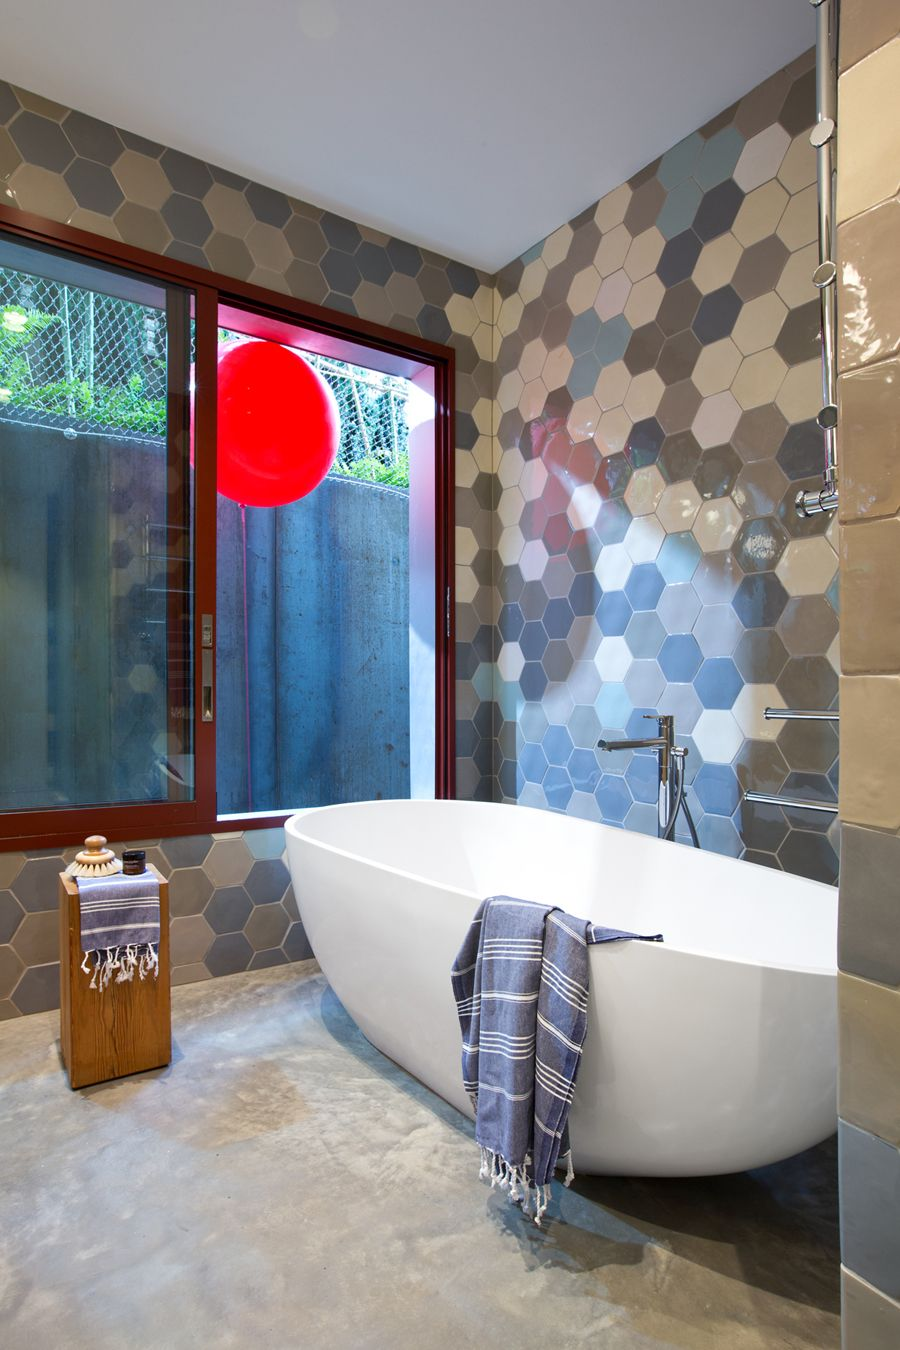 Hex Tiles By Dearhuman Hand Made Ceramic Tiles Made In Canada